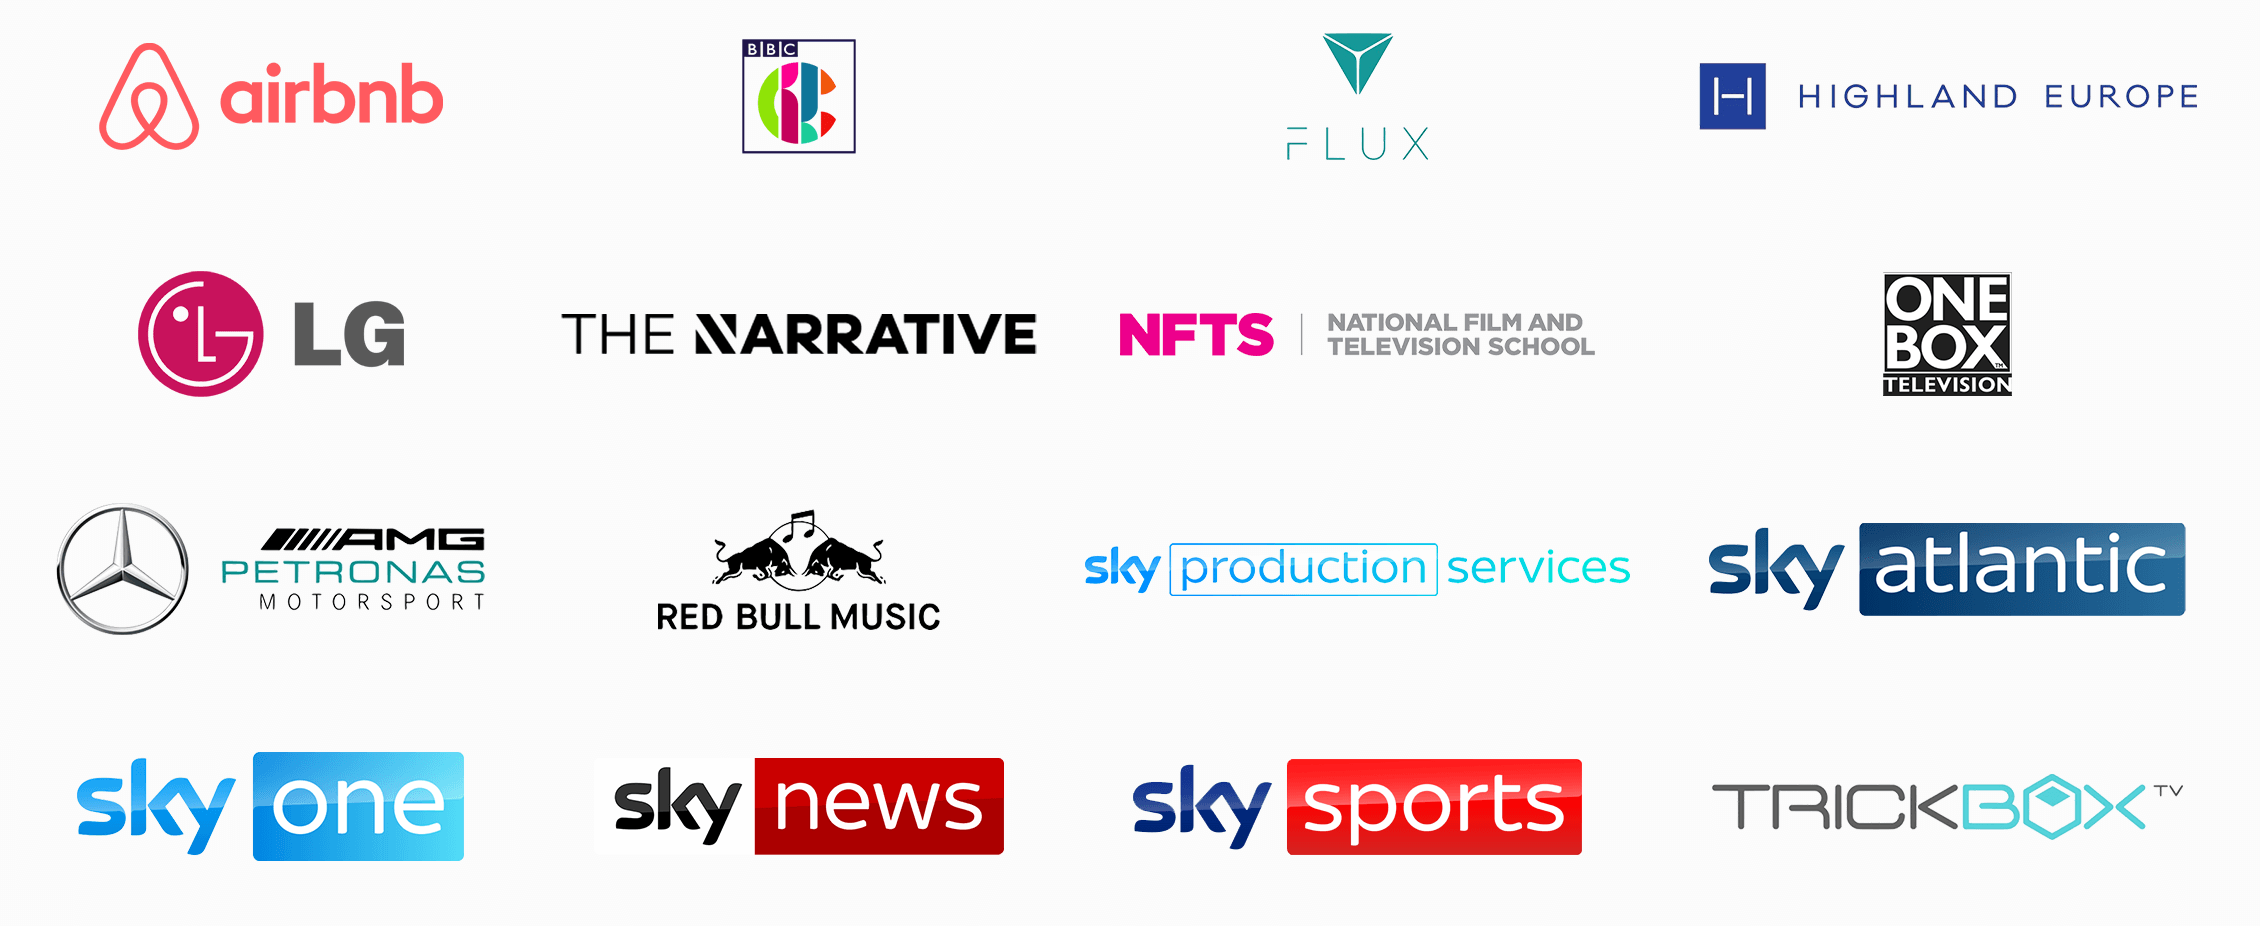 List of clients: Airbnb; CBBC; Flux Broadcast; Highland Europe; LG UK; The Narrative; National Film & Television School; One Box Television; AMG Petronas Motorsport; Red Bull Music; Sky Production Services; Sky Atlantic; Sky One; Sky News; Sky Sports; Trickbox TV